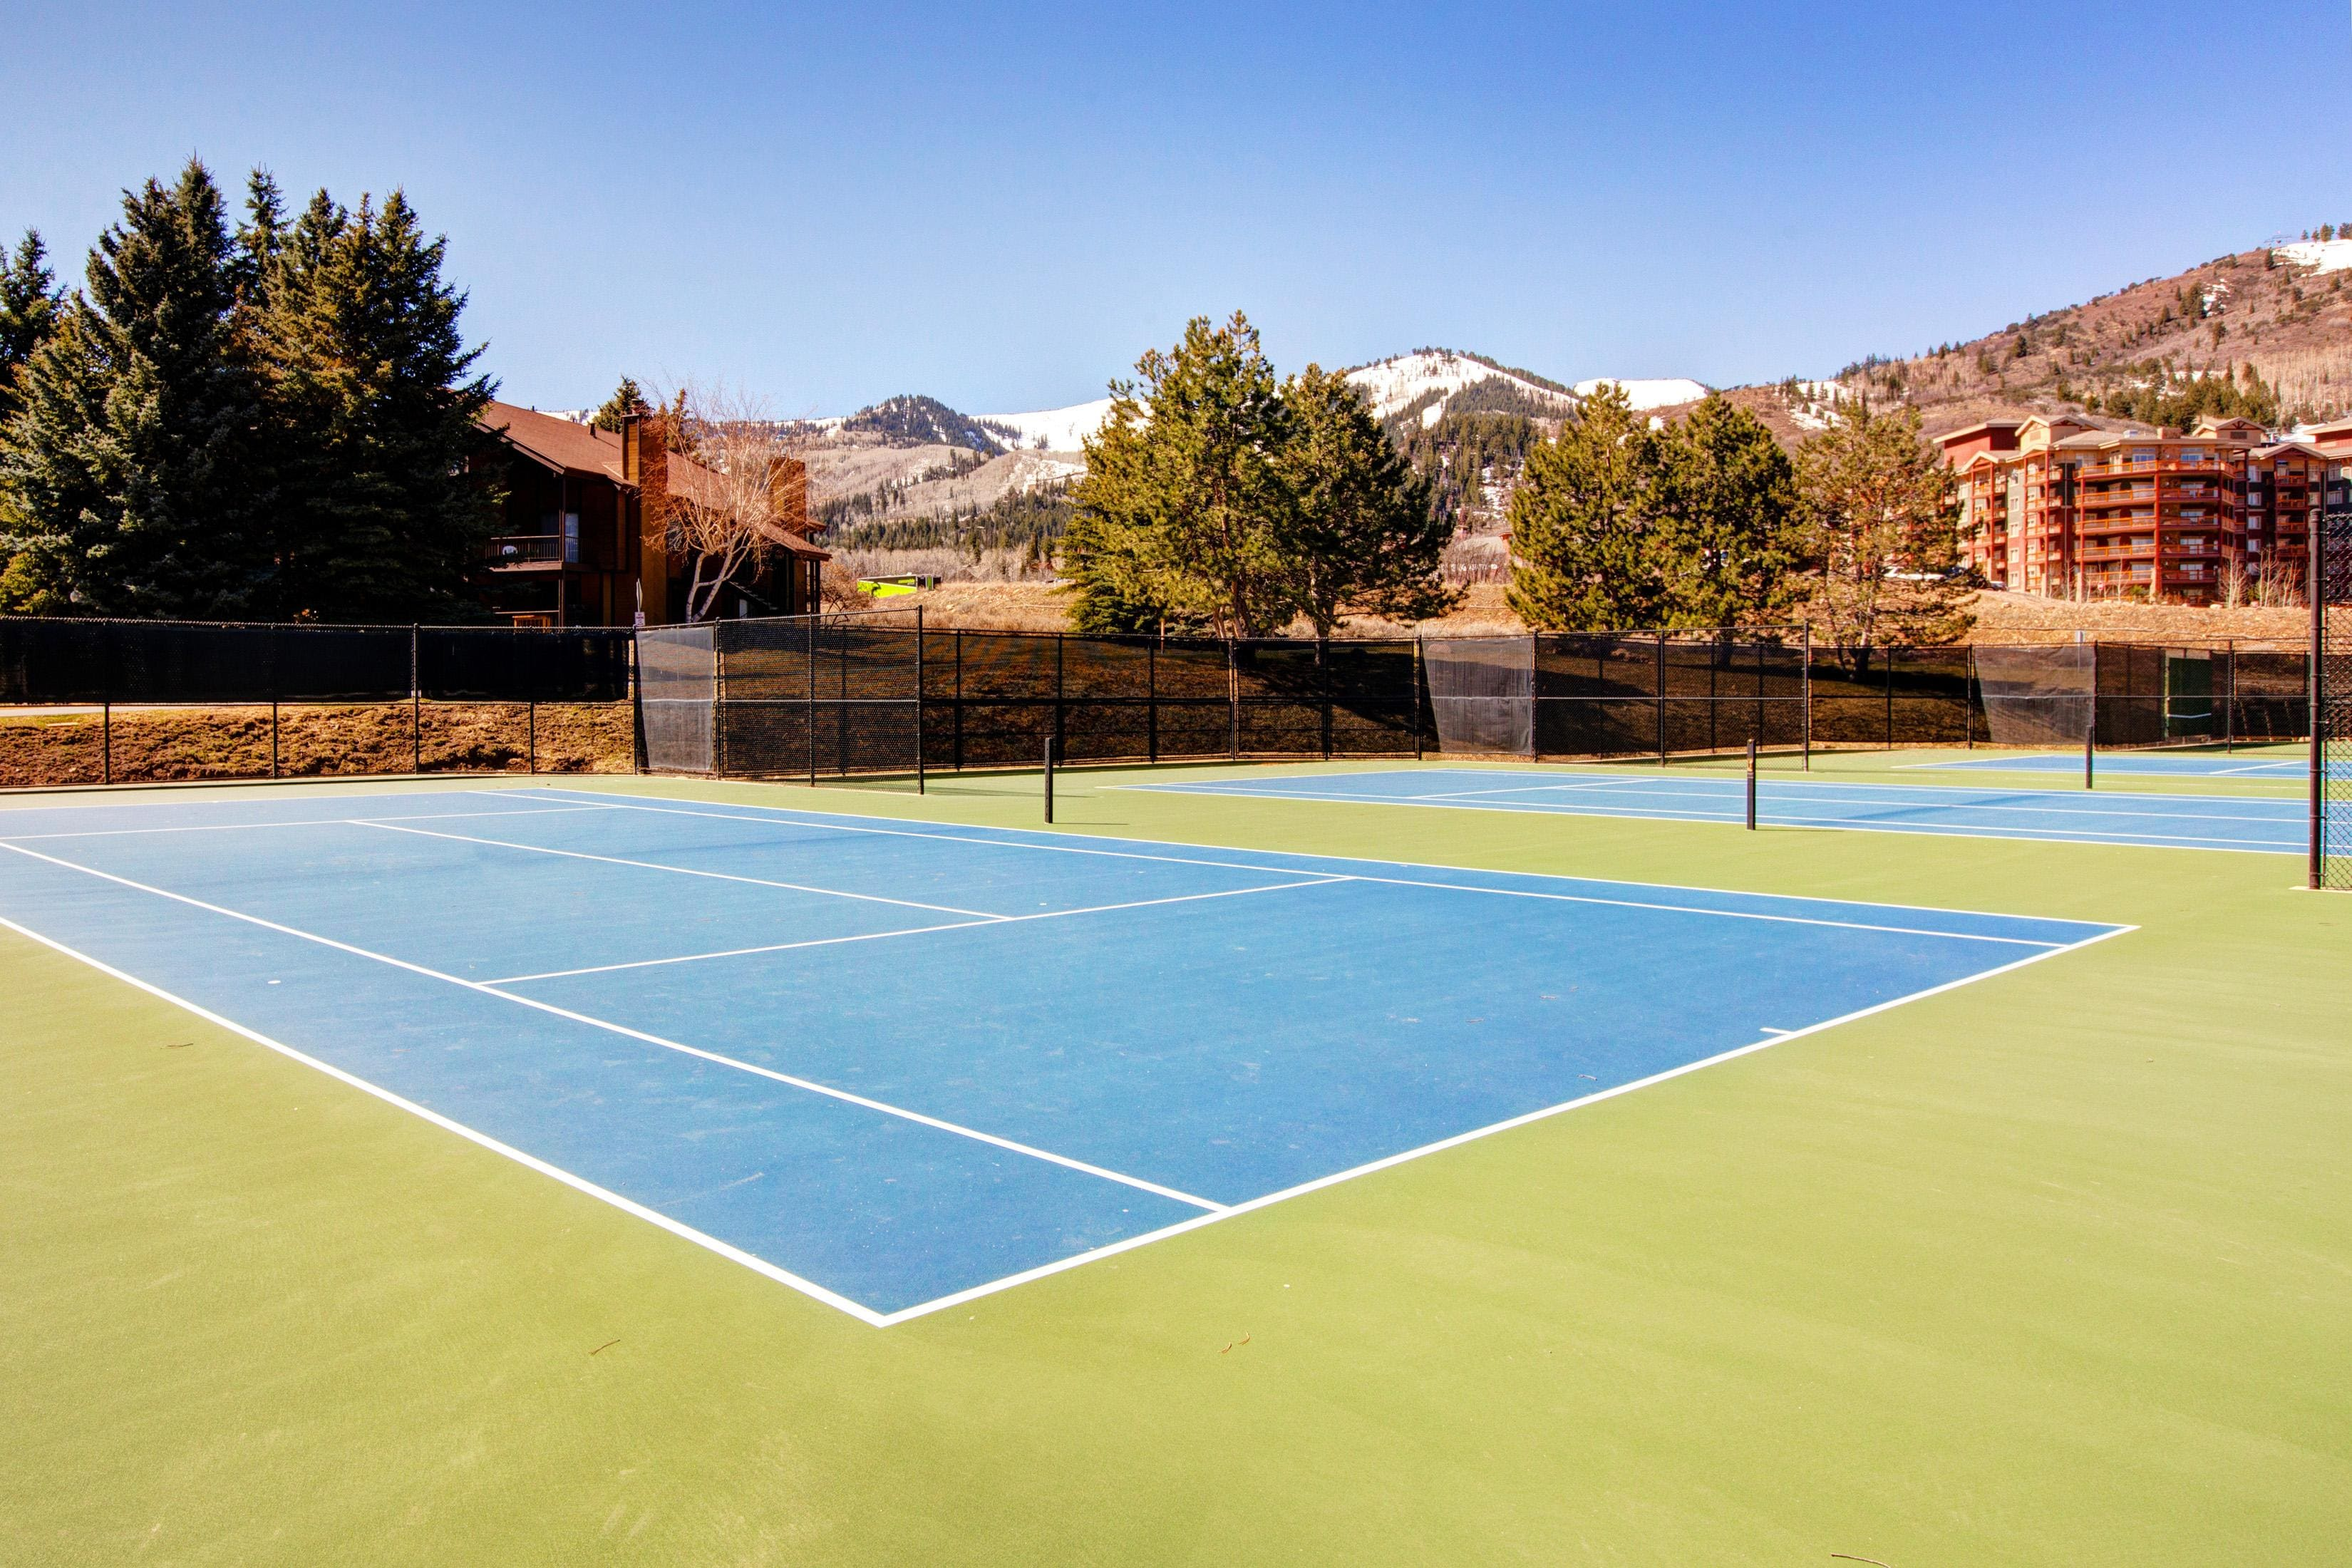 Practice your forehand at the on-site tennis courts; open in the summer and by arrangement with a key.